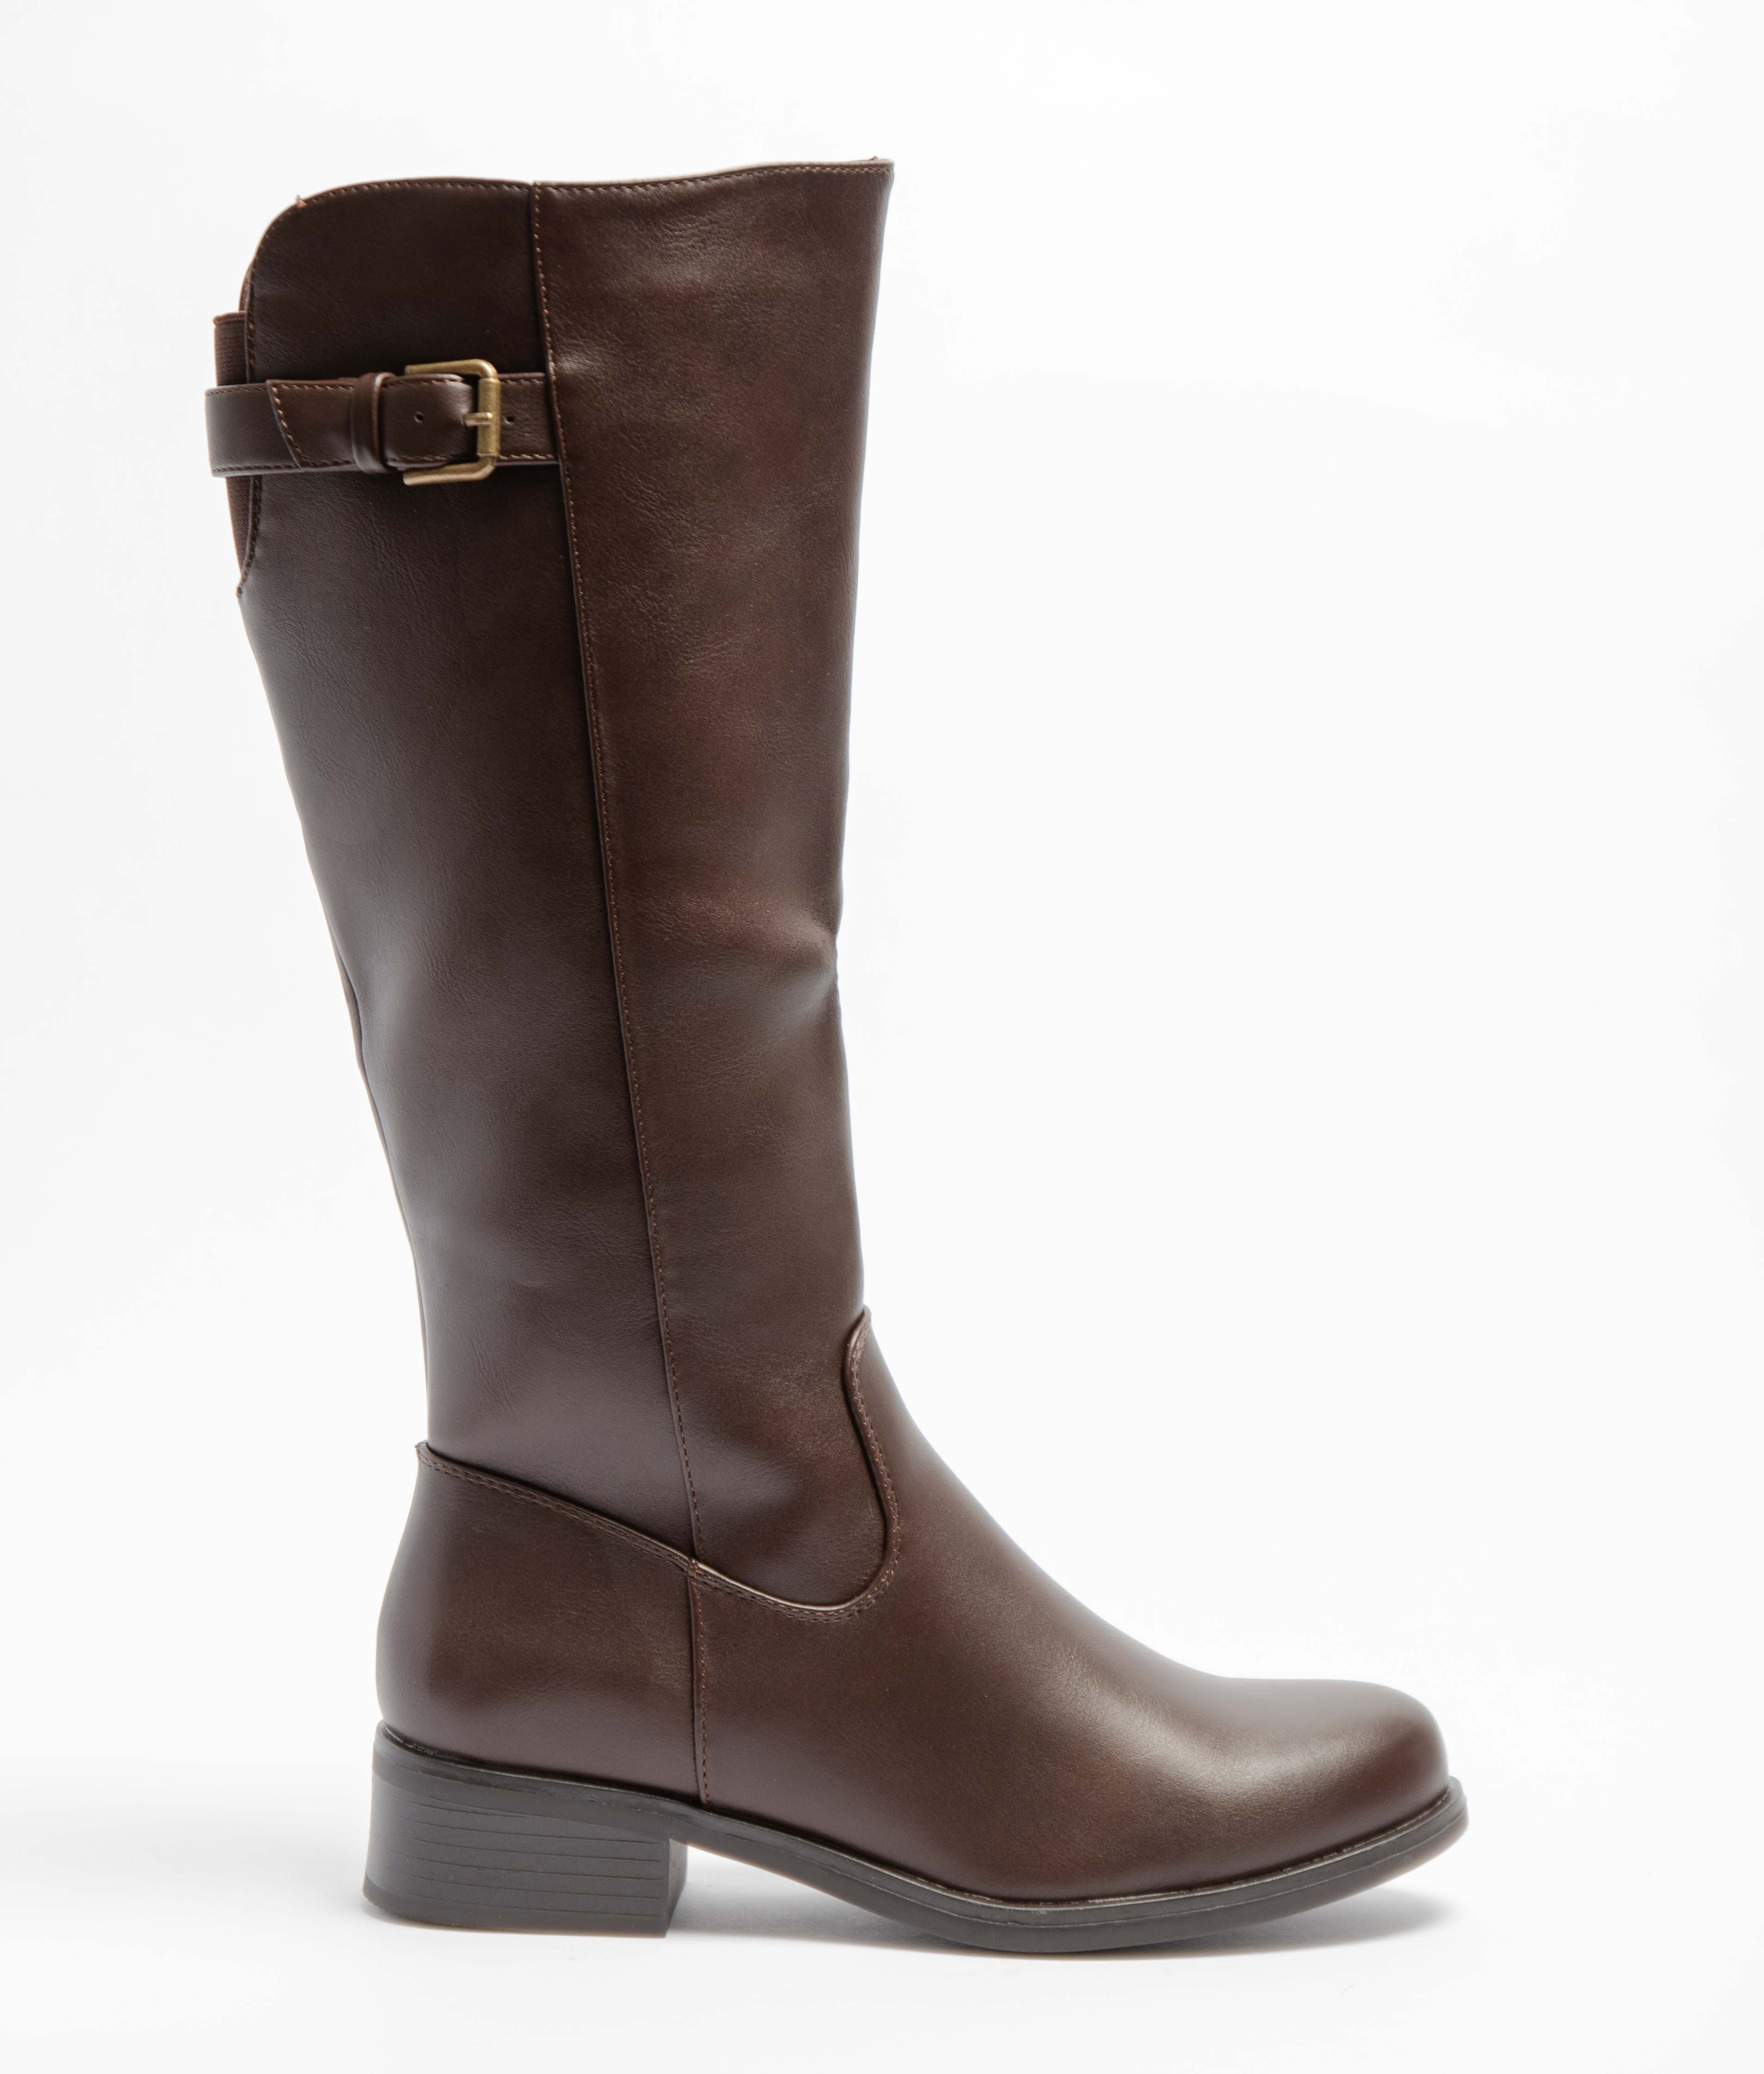 Knee-Lenght Boot Yenoa - Brown